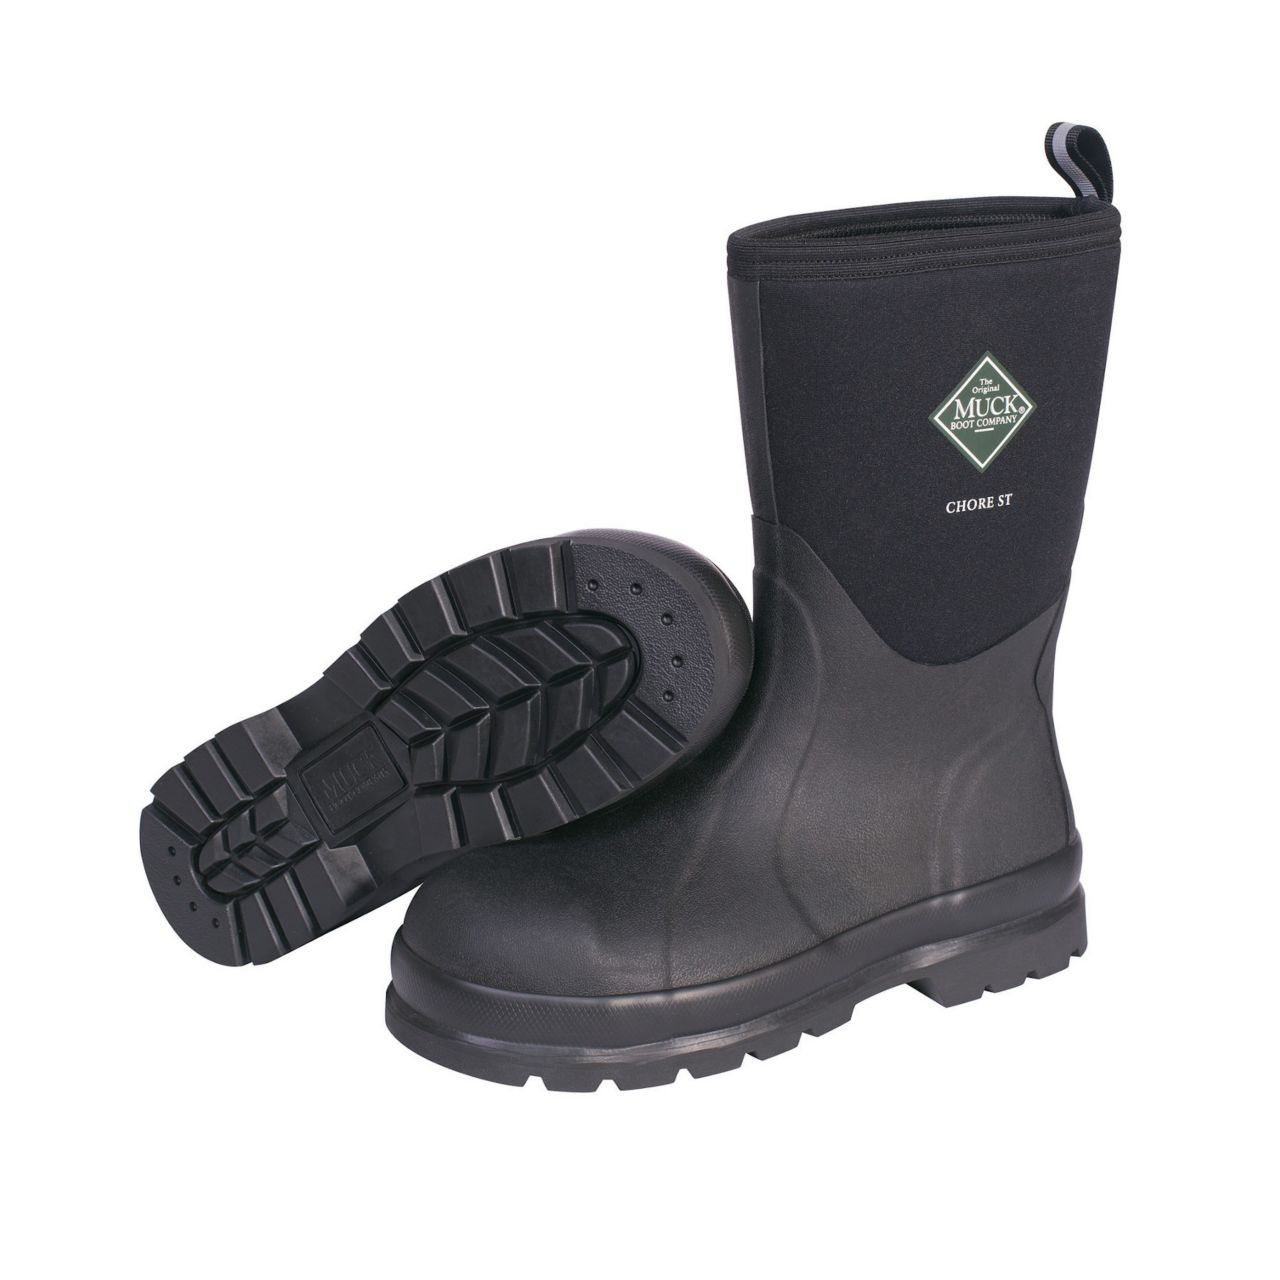 HS_muck_chore_mid-safety_toe_muck cms-000a